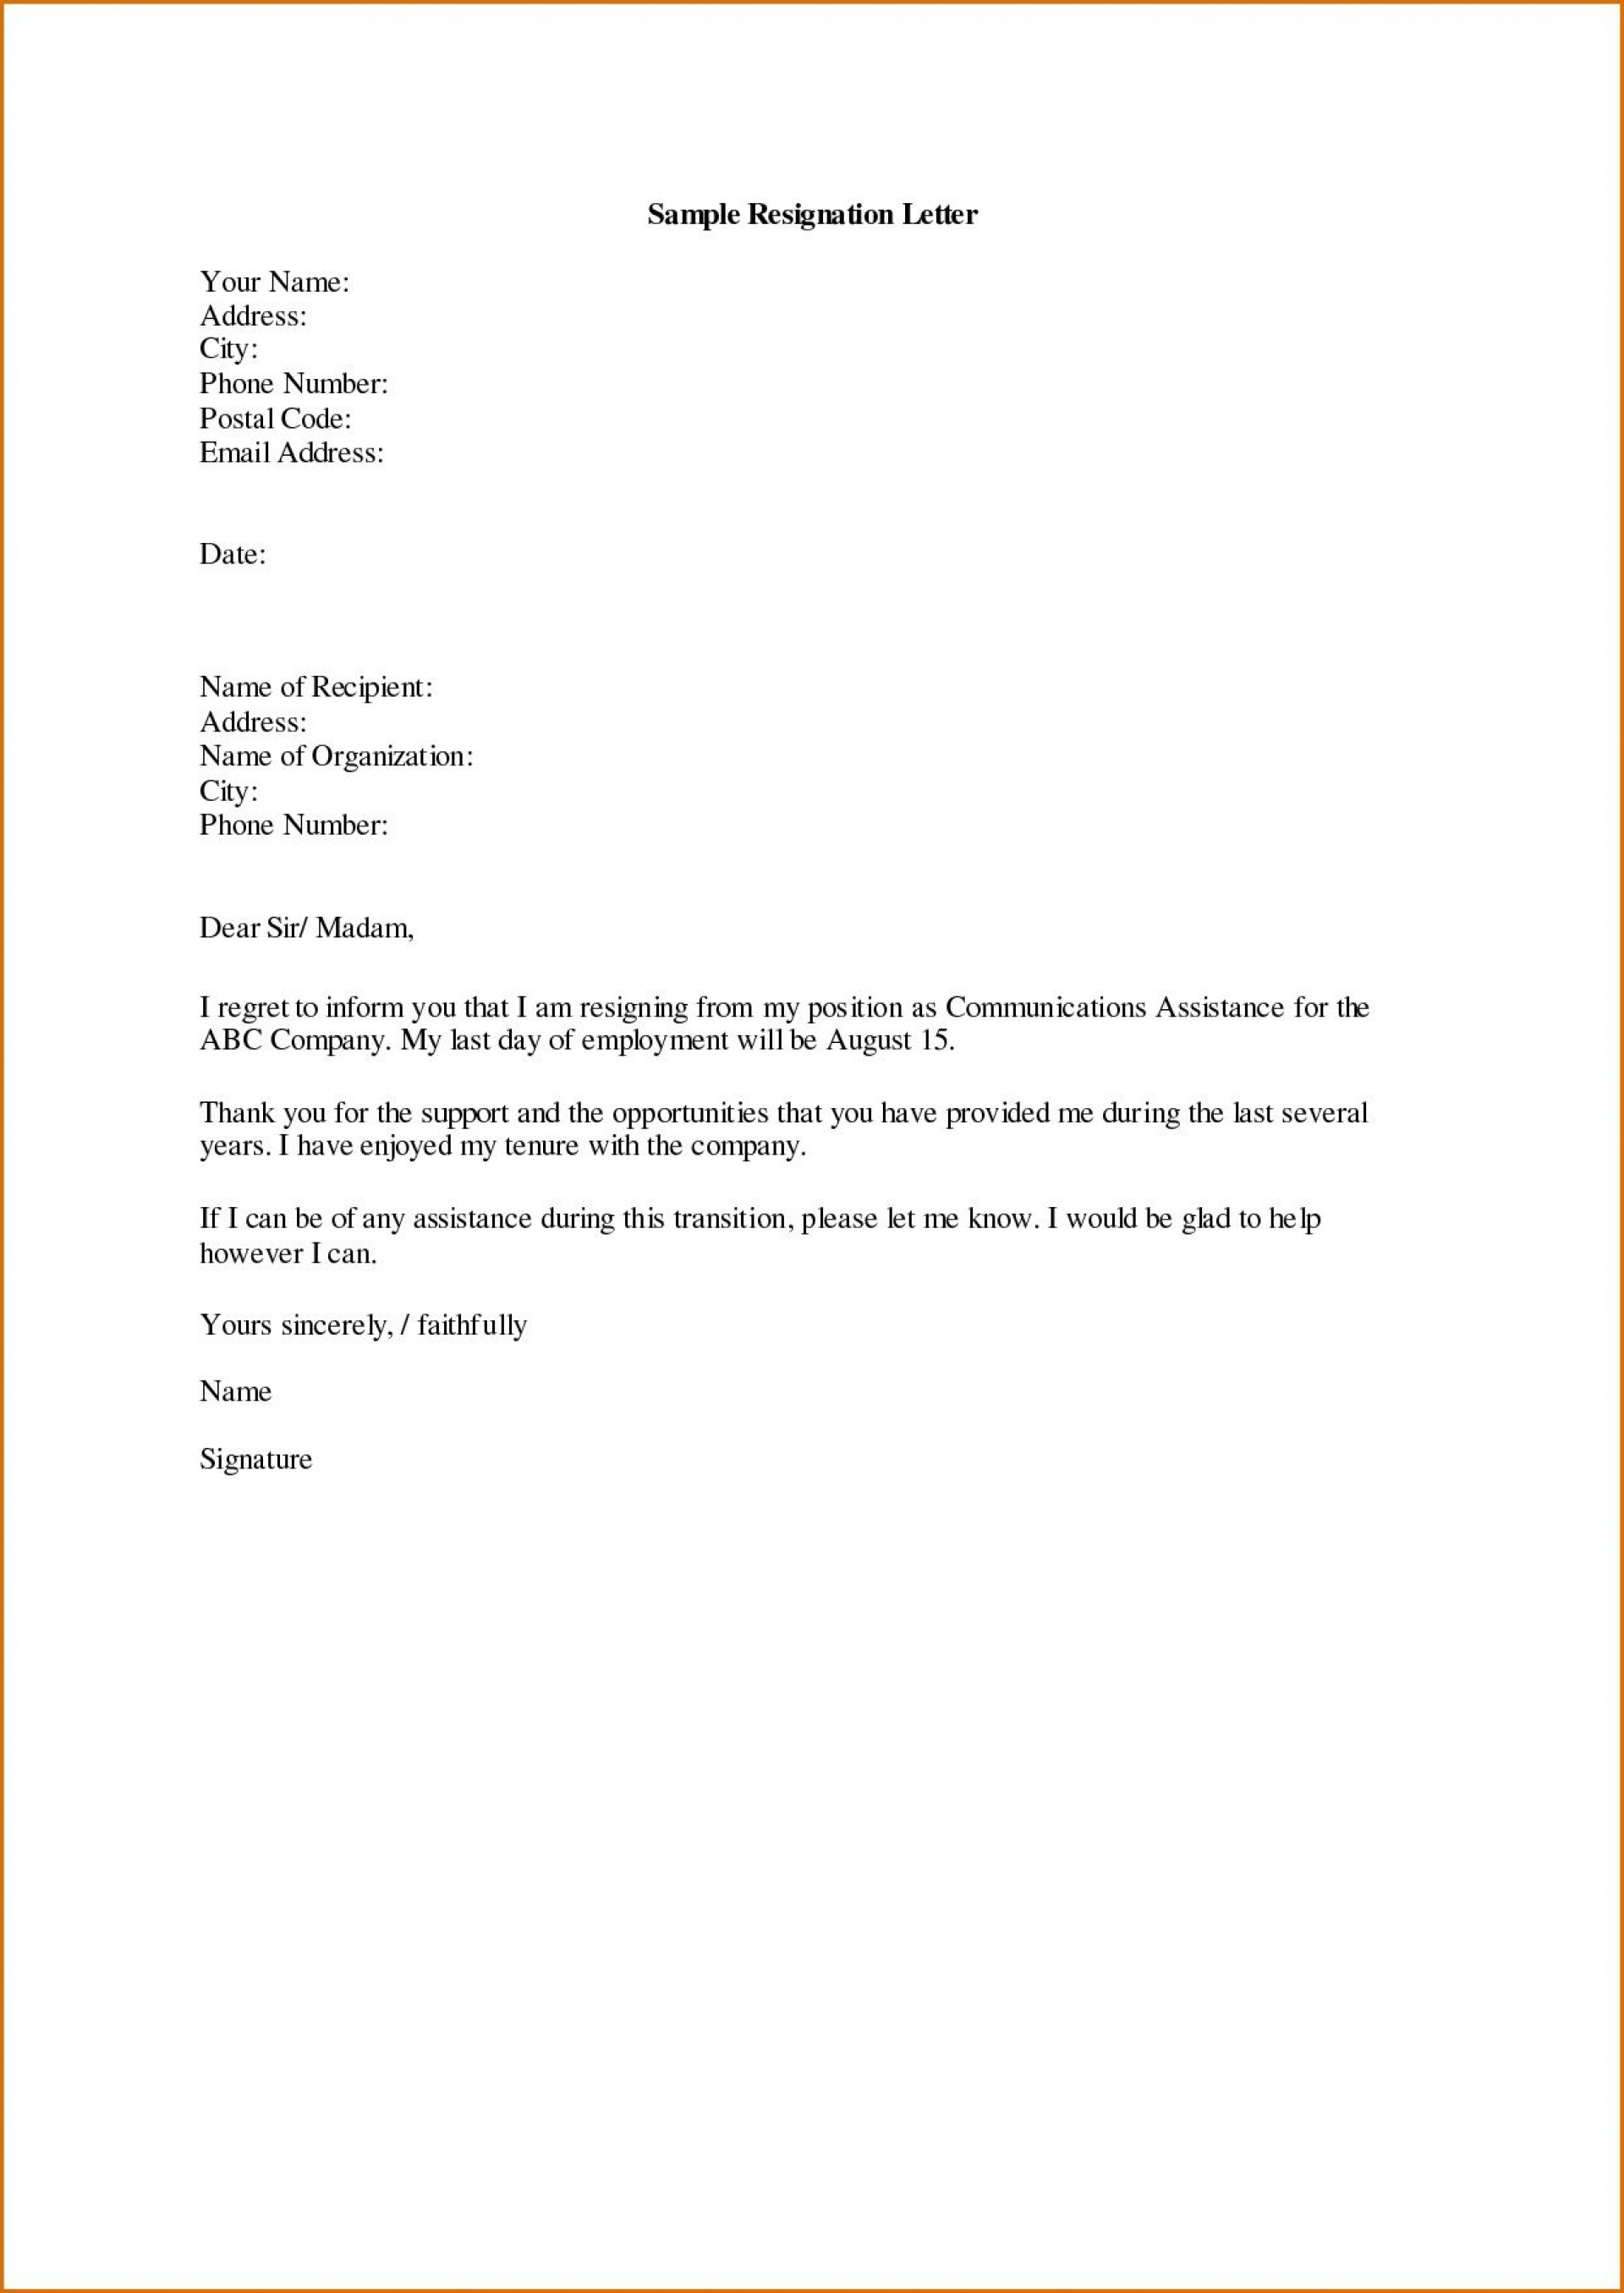 Letter Of Resignation Templates from www.addictionary.org